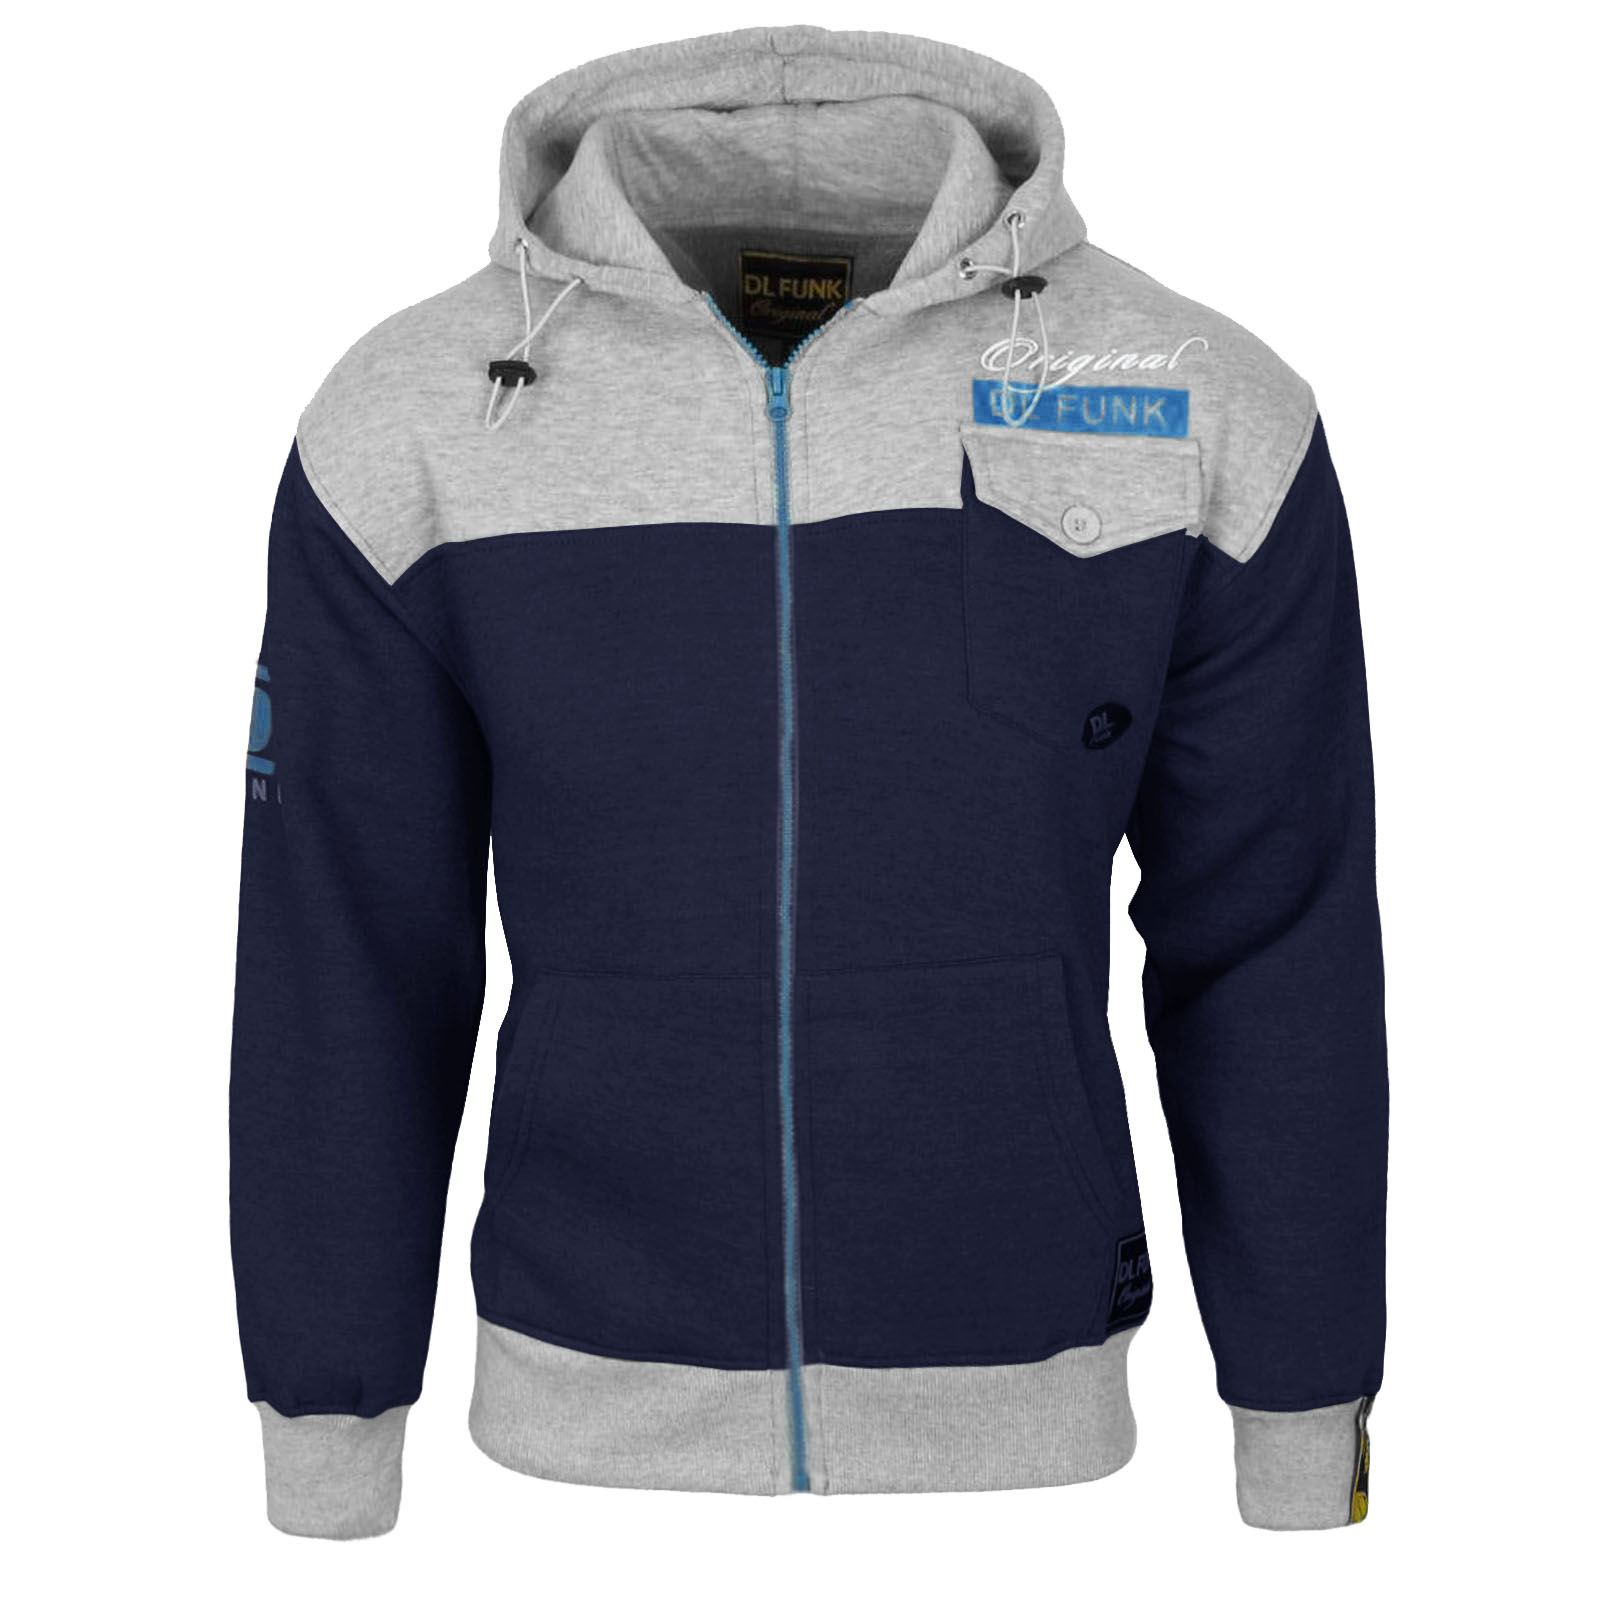 Free shipping on men's sweatshirts at exeezipcoolgetsiu9tq.cf Find a great selection of hoodies, fleece & more from top brands. Totally free shipping & returns.